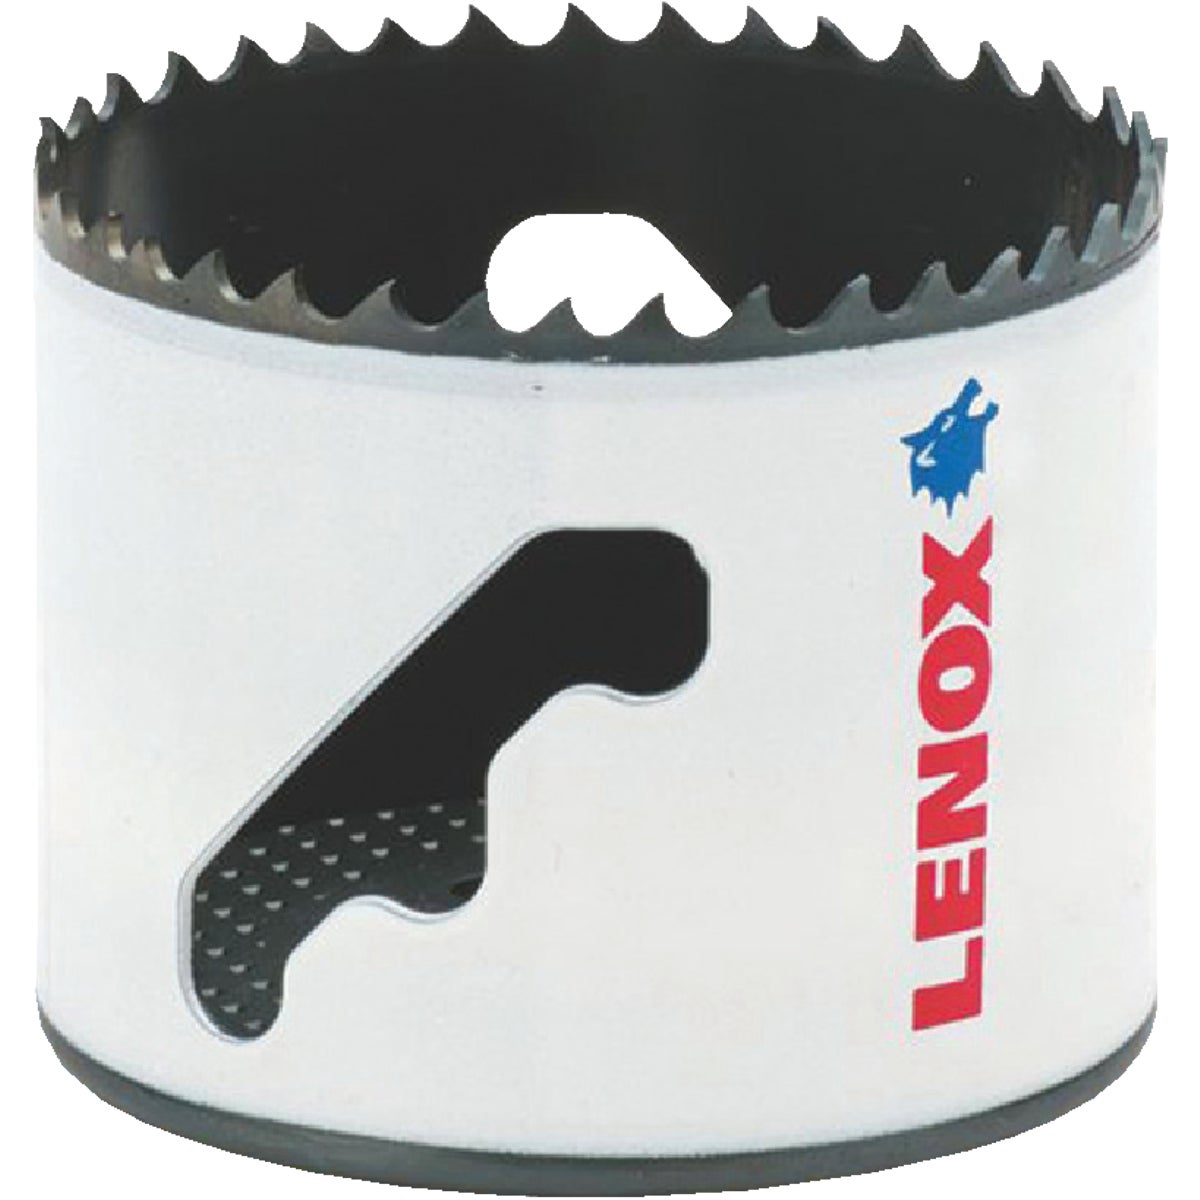 "2-5/8"" HOLE SAW - 1771988 by Lenox"